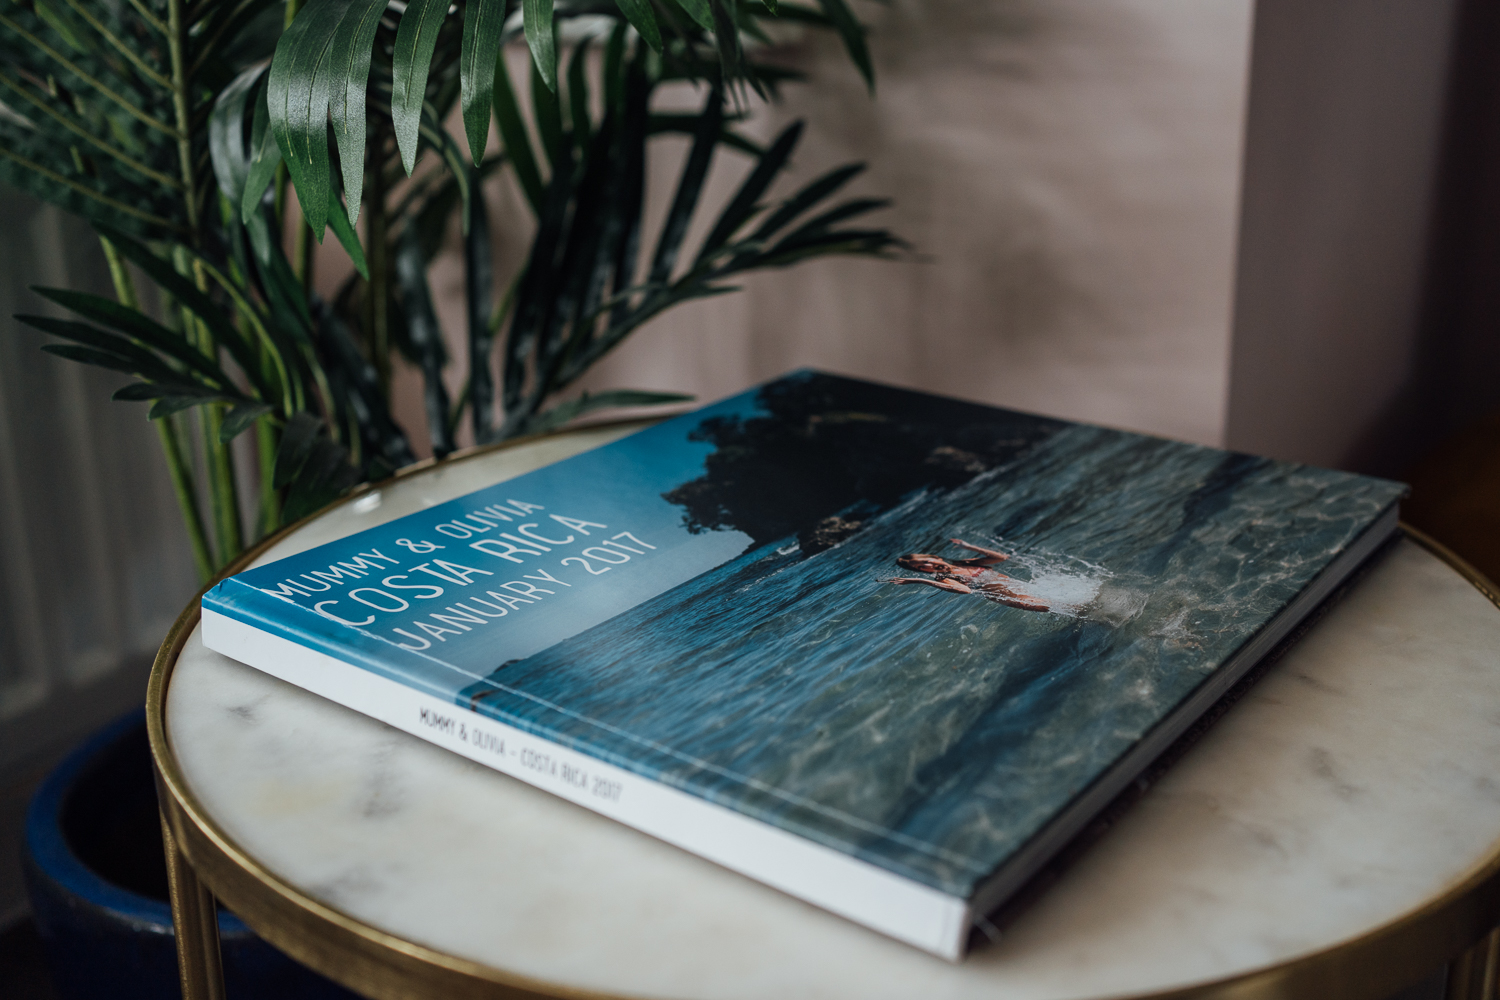 ORGANISING AND PRINTING YOUR PHOTOS PHOTO BOOK ON COFFEE TABLE WITH PLANT IN HOME